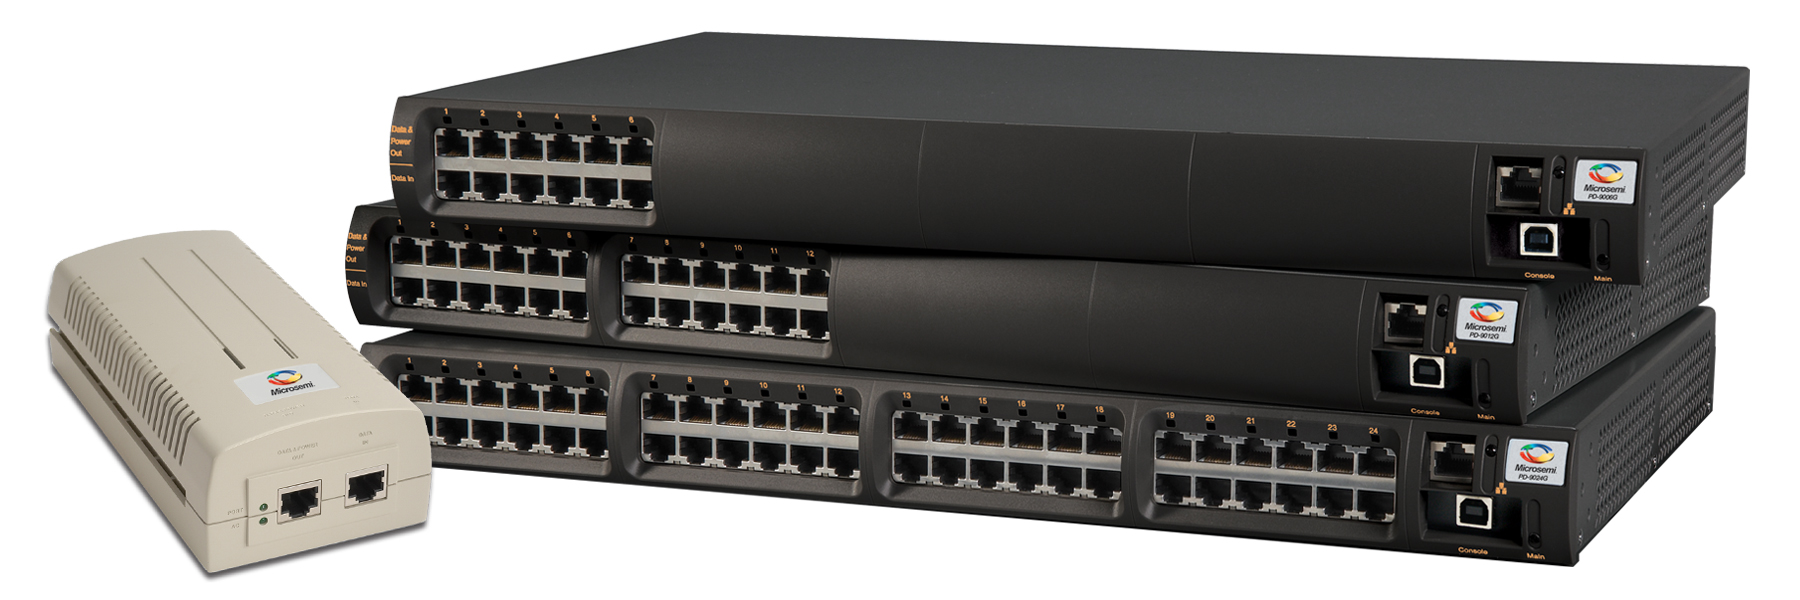 Power over Ethernet PoE switch PoE switches | Microsemi